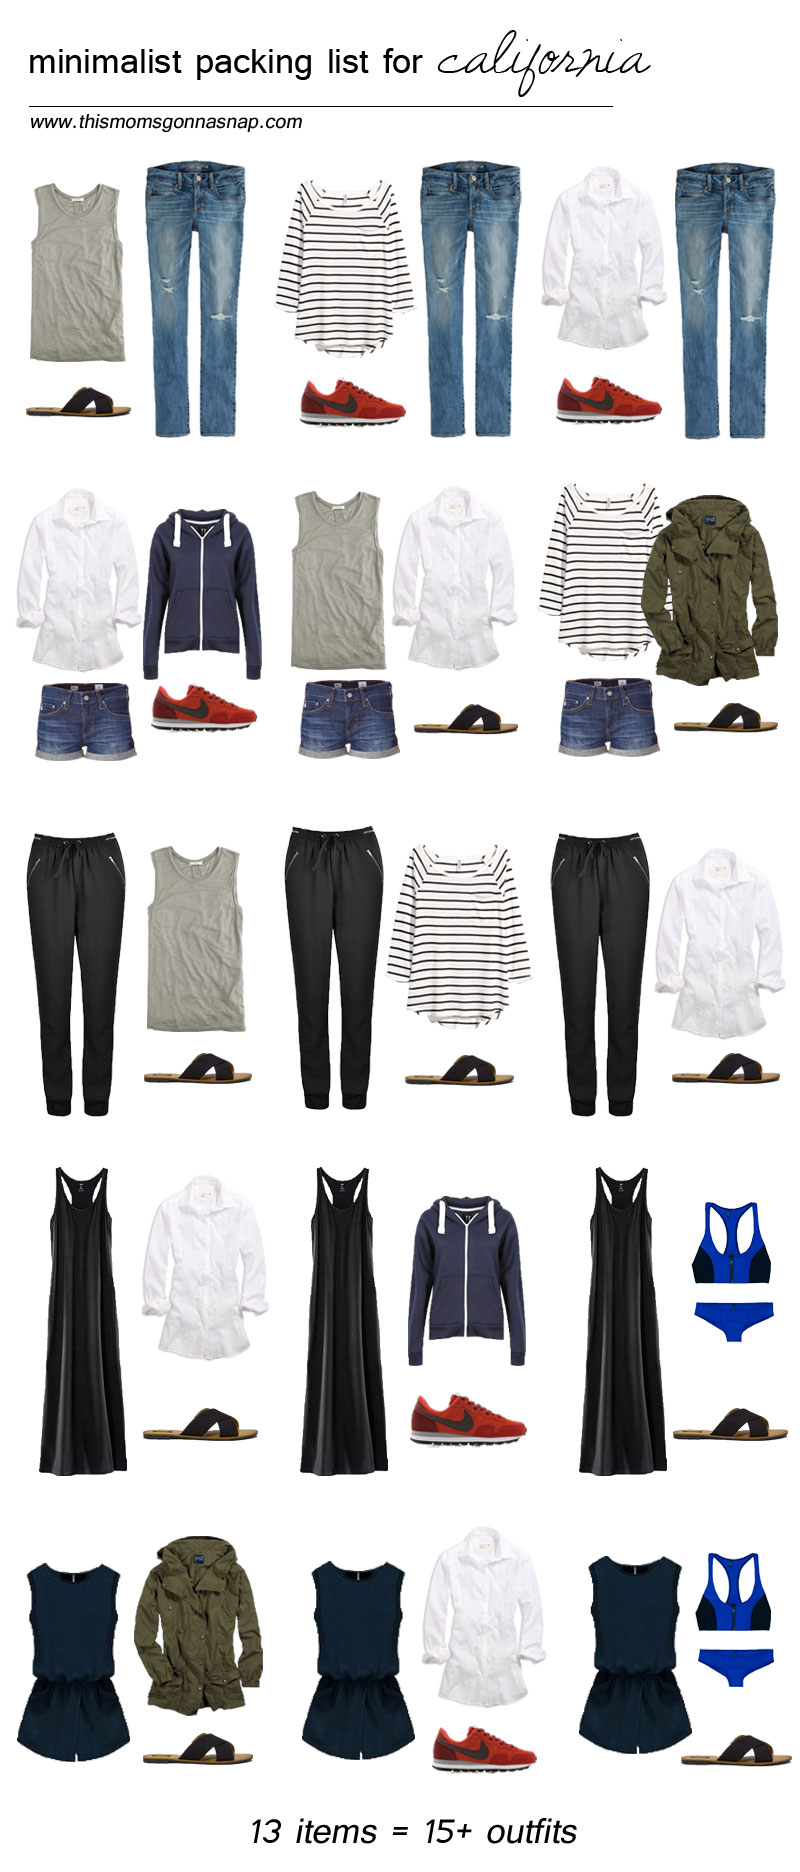 mom style, packing list, minimalist wardrobe, packing light, california trip, california vacation, packing list for californiamom style, packing list, minimalist wardrobe, packing light, california trip, california vacation, packing list for california